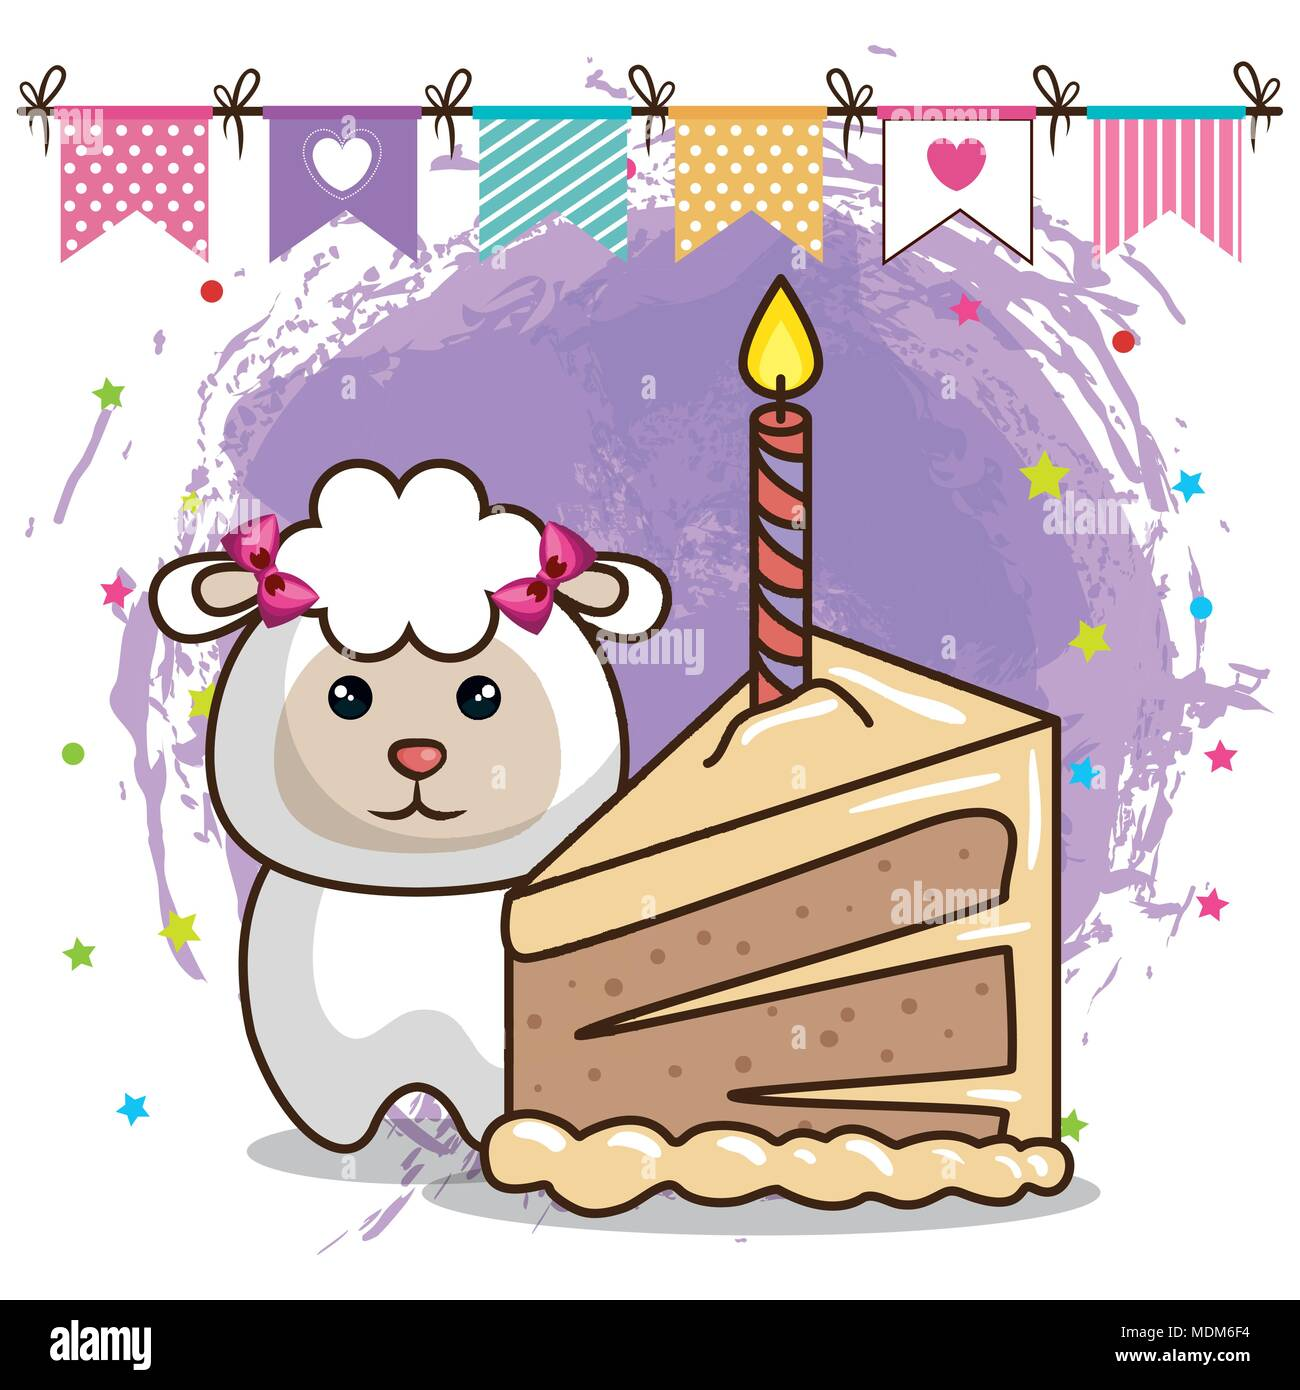 Happy Birthday Card With Cute Sheep Stock Vector Art Illustration